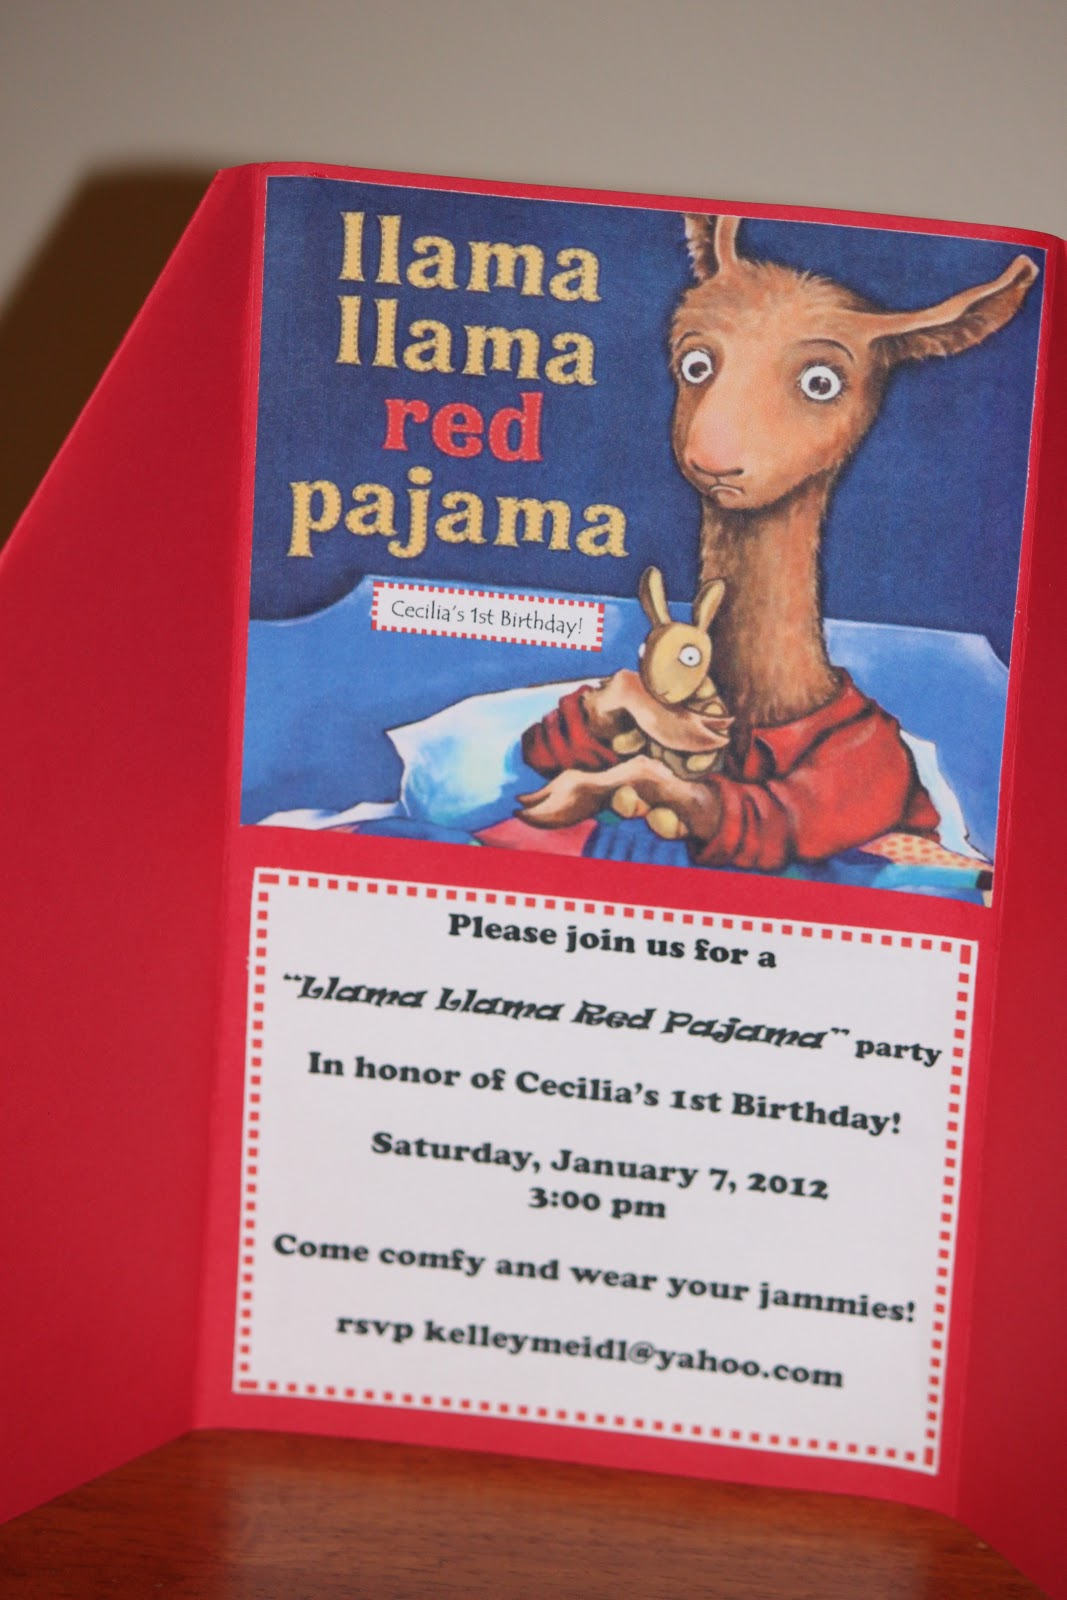 Pinwheels Pigtails Amp Parties Llama Llama Red Pajama Party